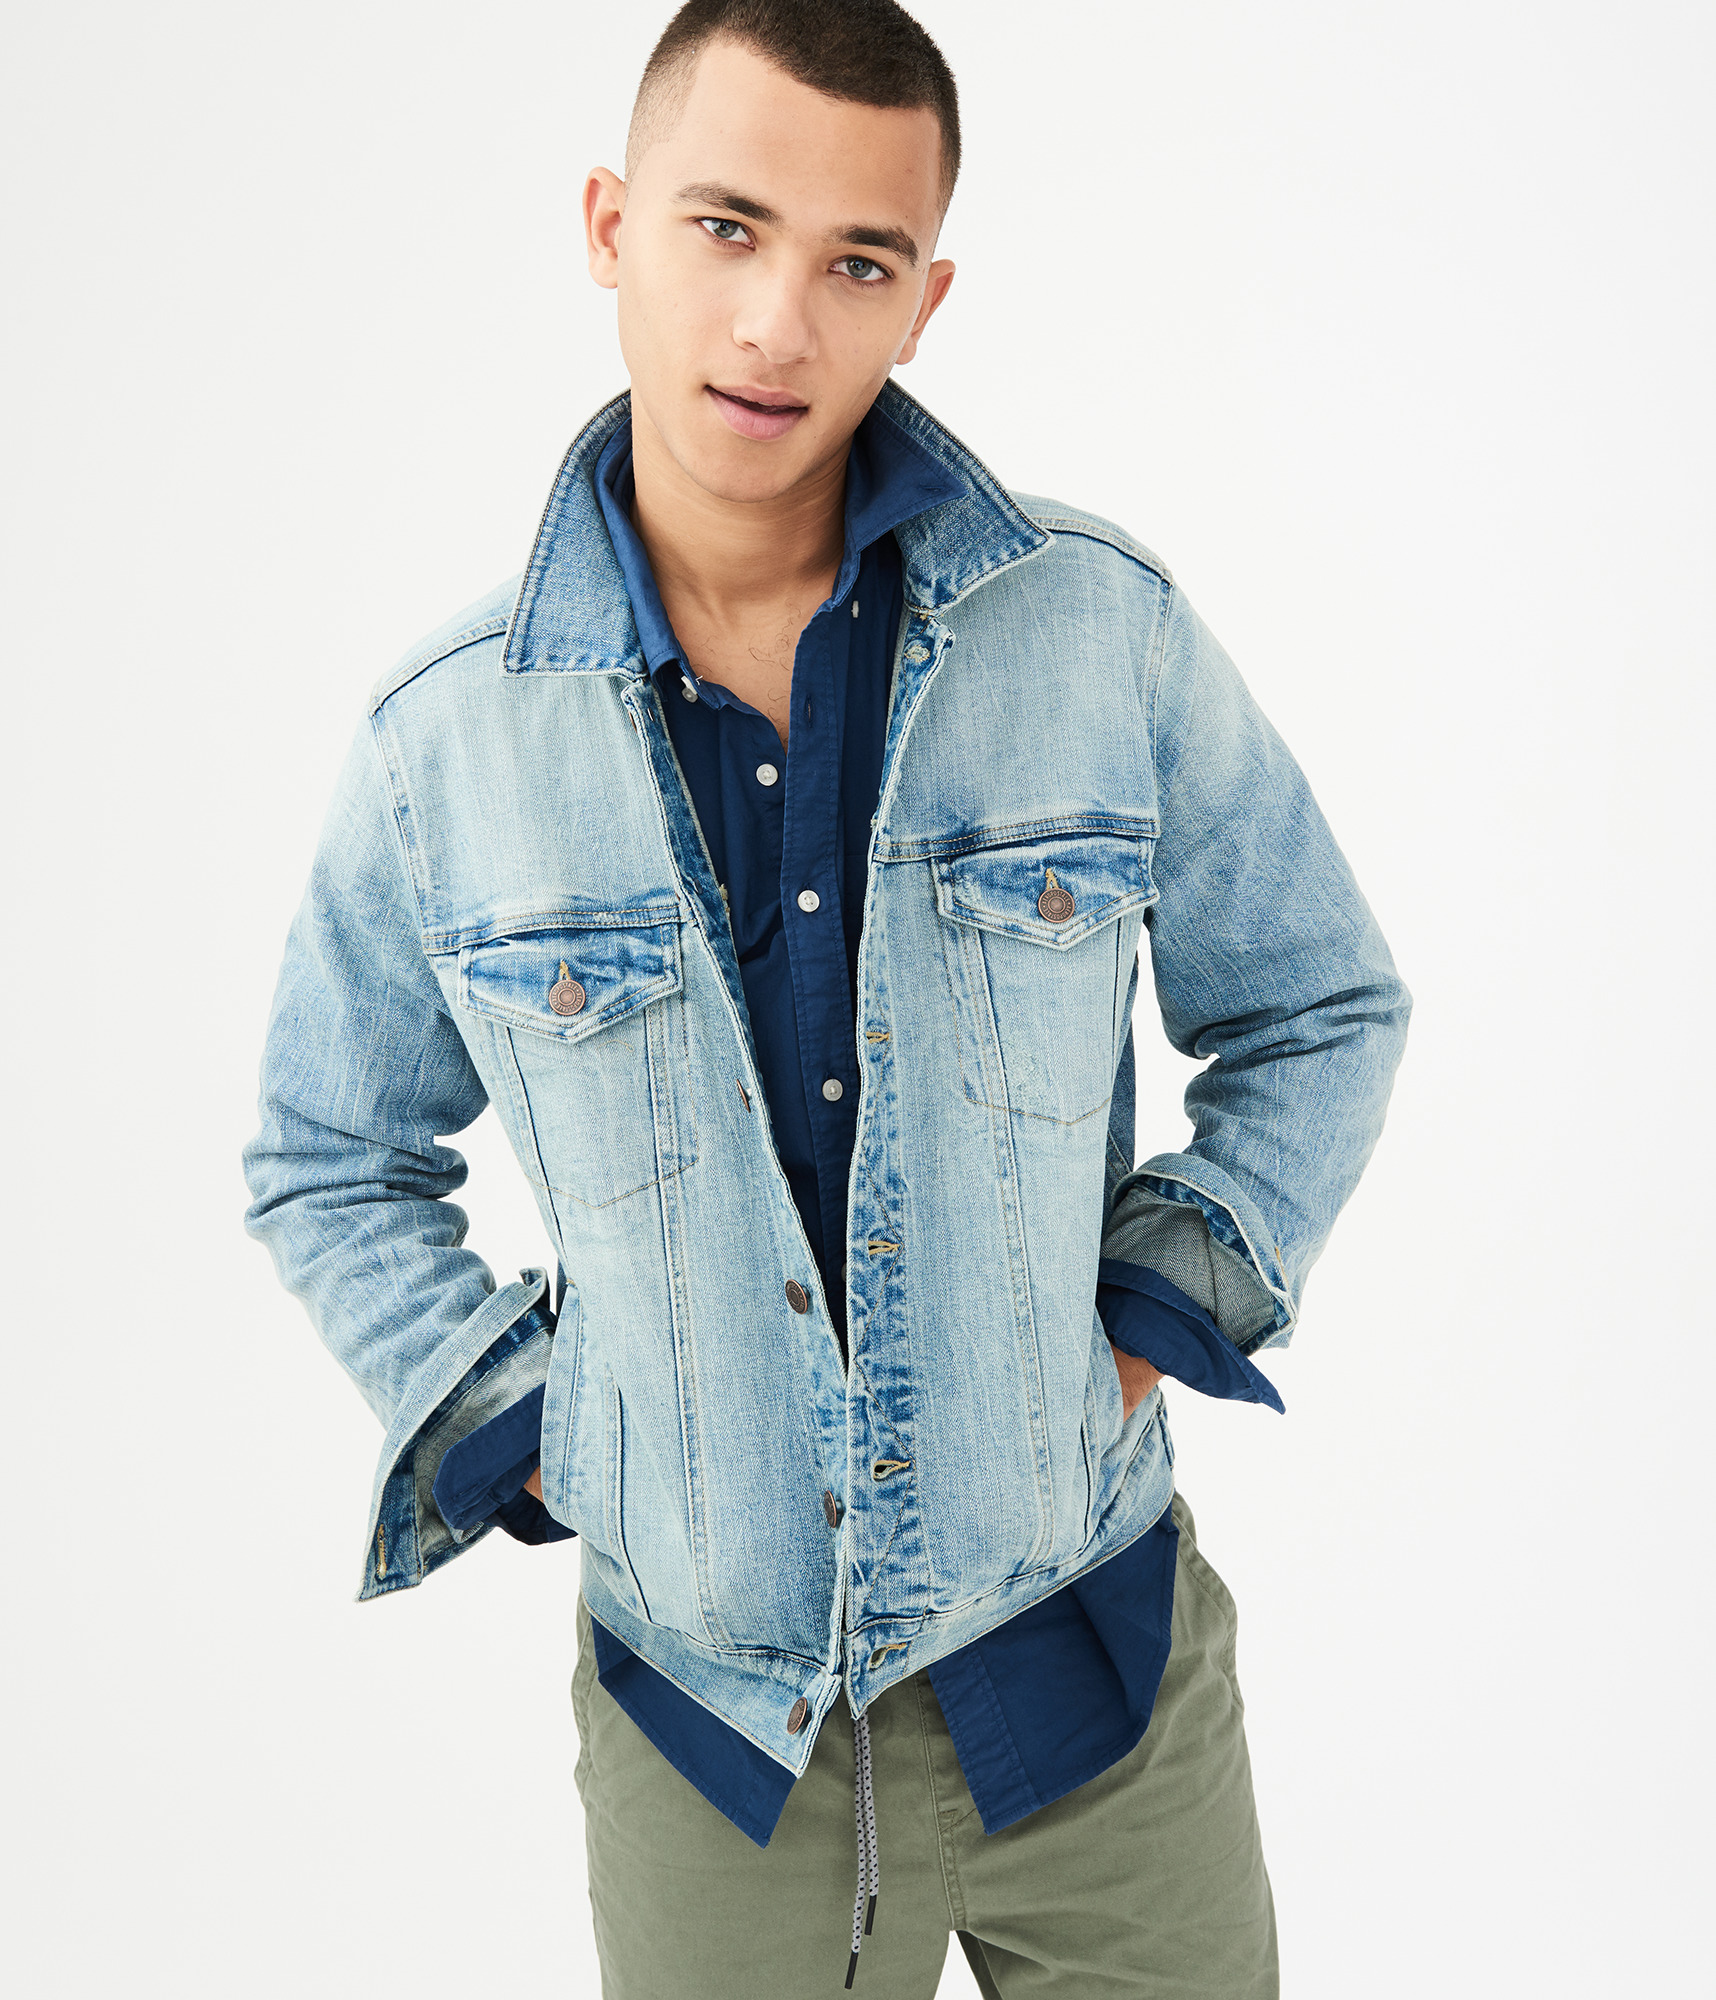 Aeropostale Mens Light Wash Stretch Denim Jacket Ebay